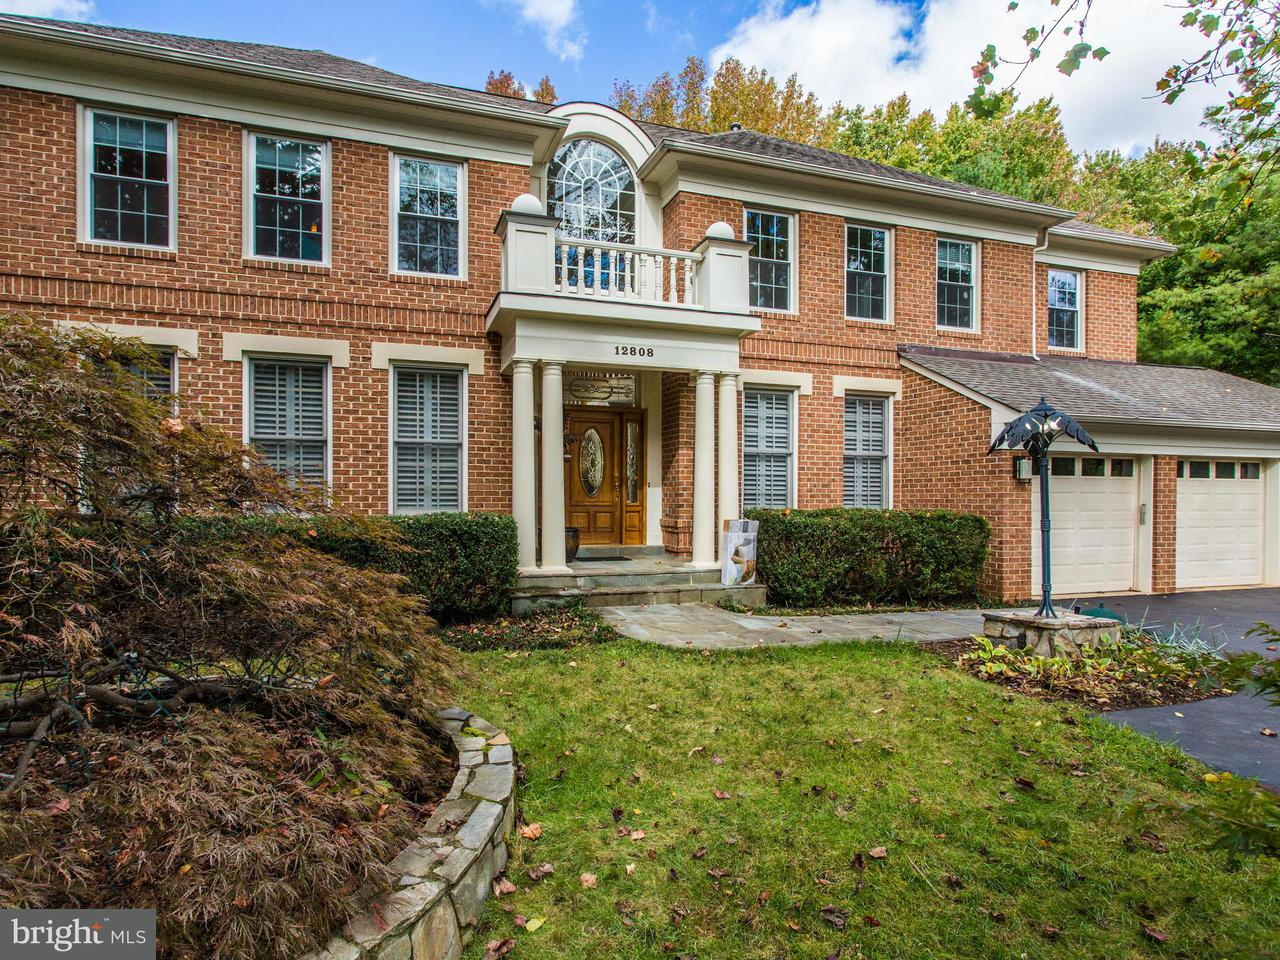 Single Family Home for Sale at 12808 HAMLET HILL WAY 12808 HAMLET HILL WAY Fairfax, Virginia 22030 United States